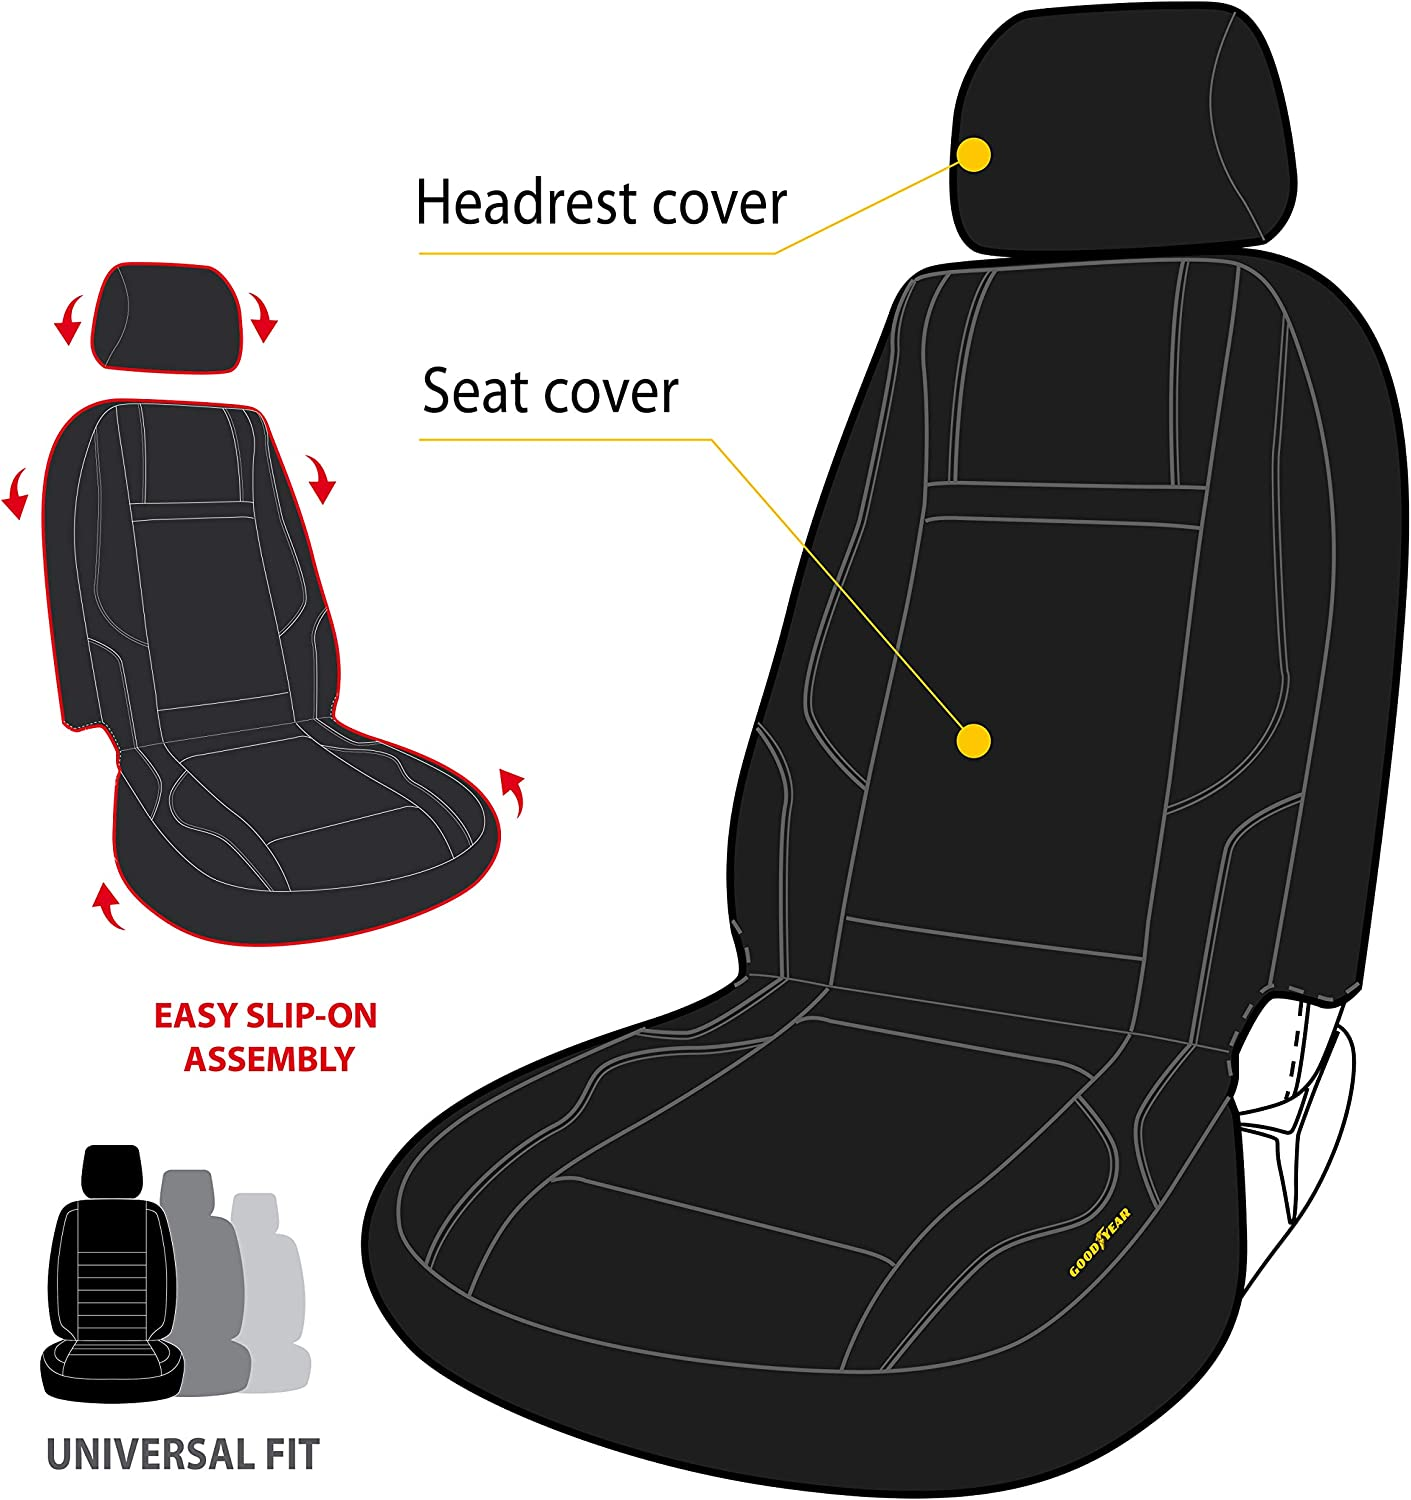 "Goodyear GY1247 \ Water Resistant Car Seat Cover \ 100/% Pure Neoprene Fabric for Maximum Protection \ Fits Most Vehicles \ Headrest Cover 10/""H x 11/""W \ Seat 46/""H x 18/""W \ Side Airbag Compatible"